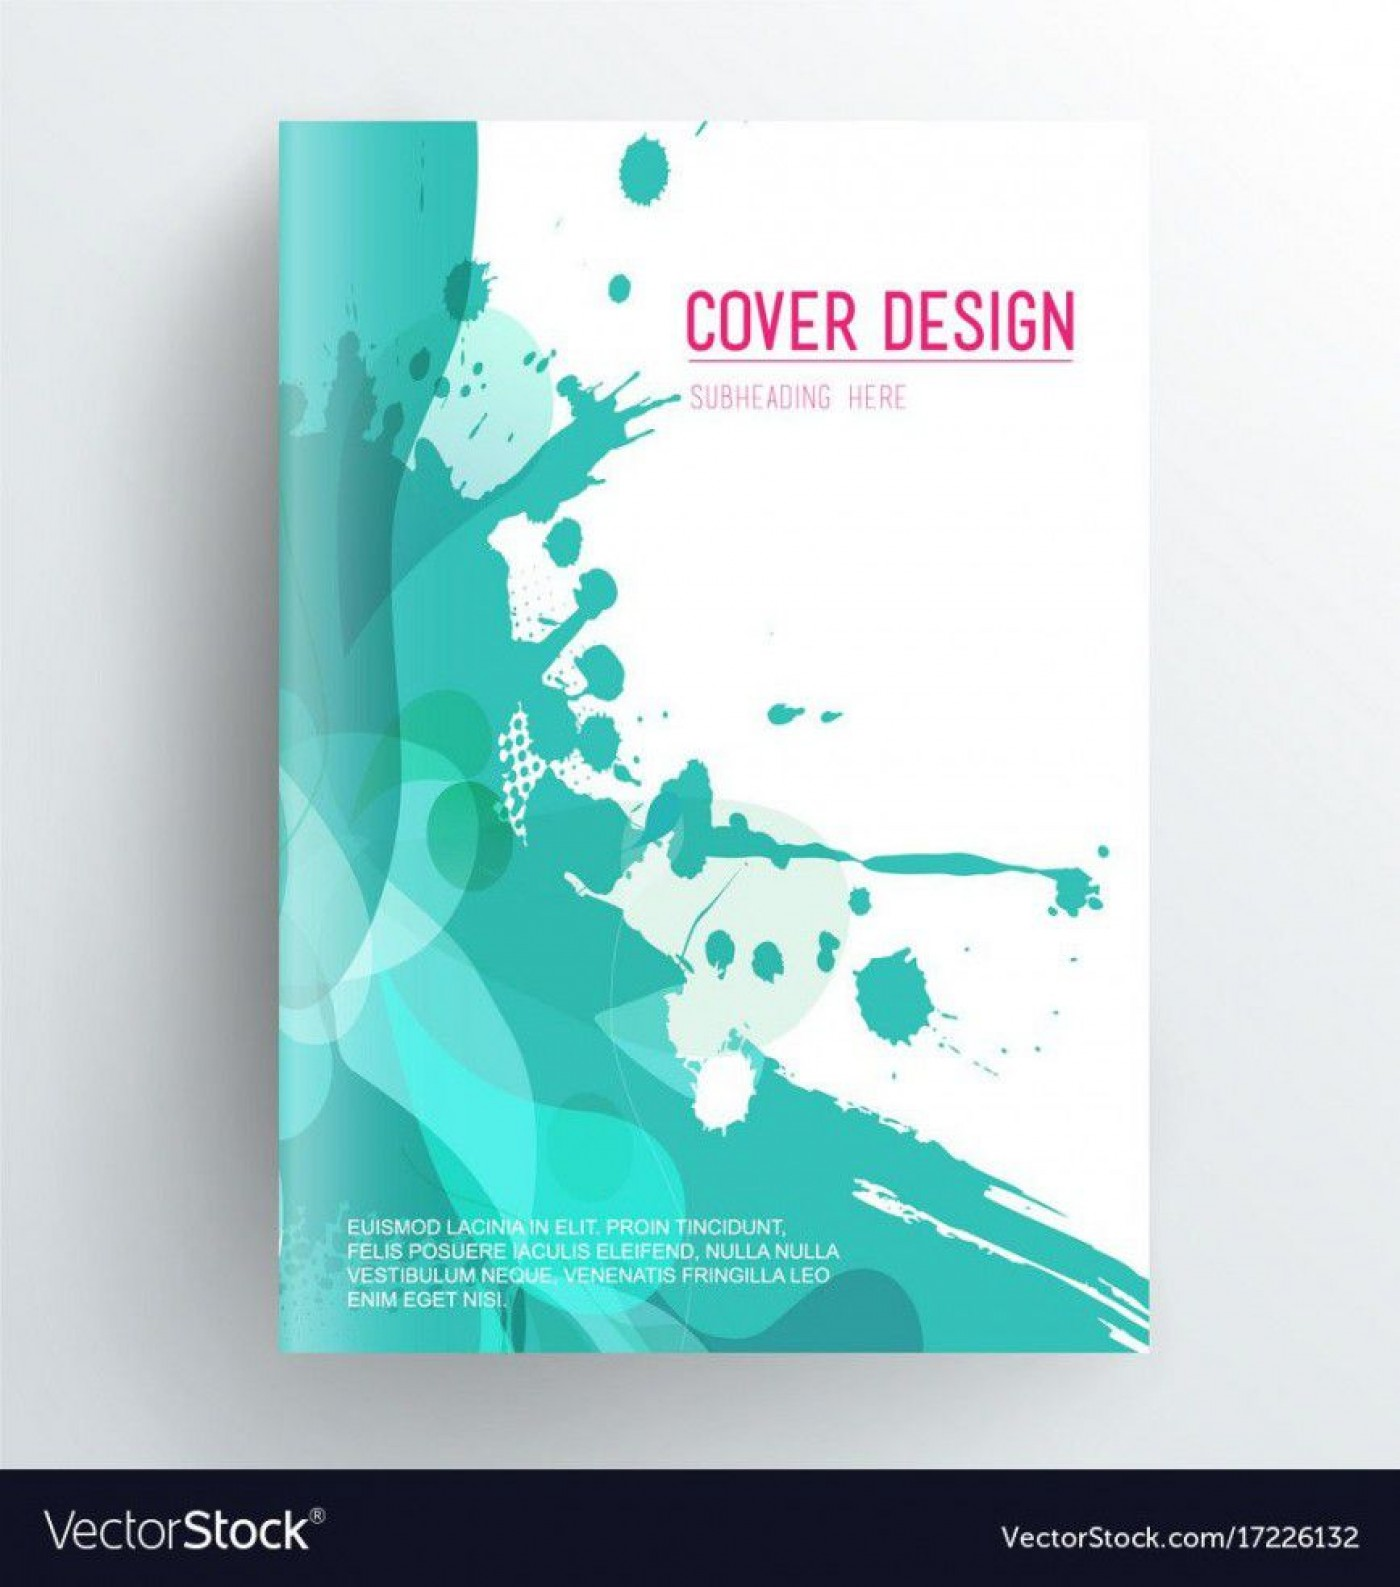 000 Excellent Free Download Book Cover Design Template Psd Sample 1400